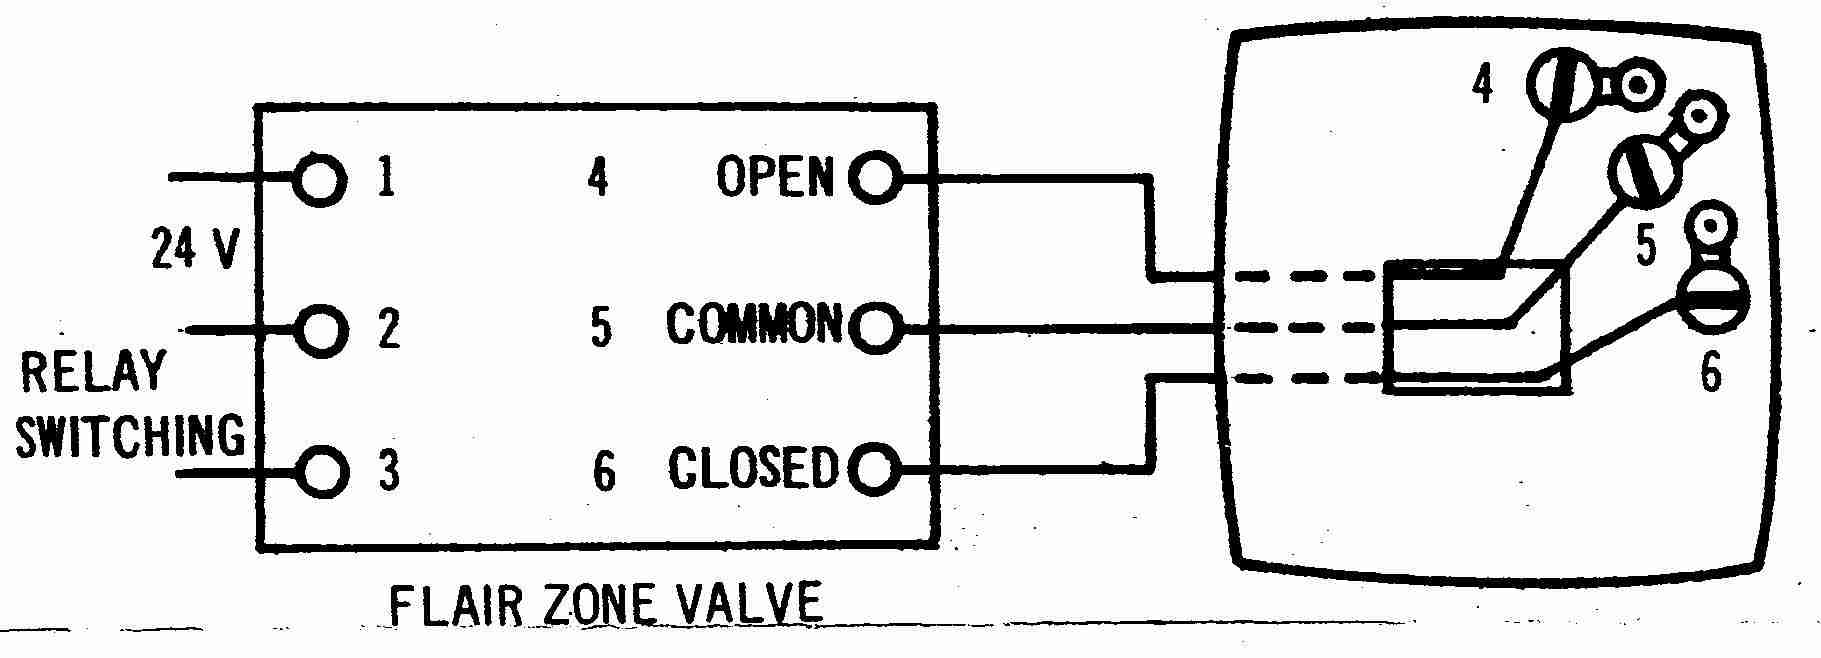 zone valve wiring installation instructions guide to heating rh inspectapedia com zone valve wiring from thermostat zone valve wiring diagram honeywell